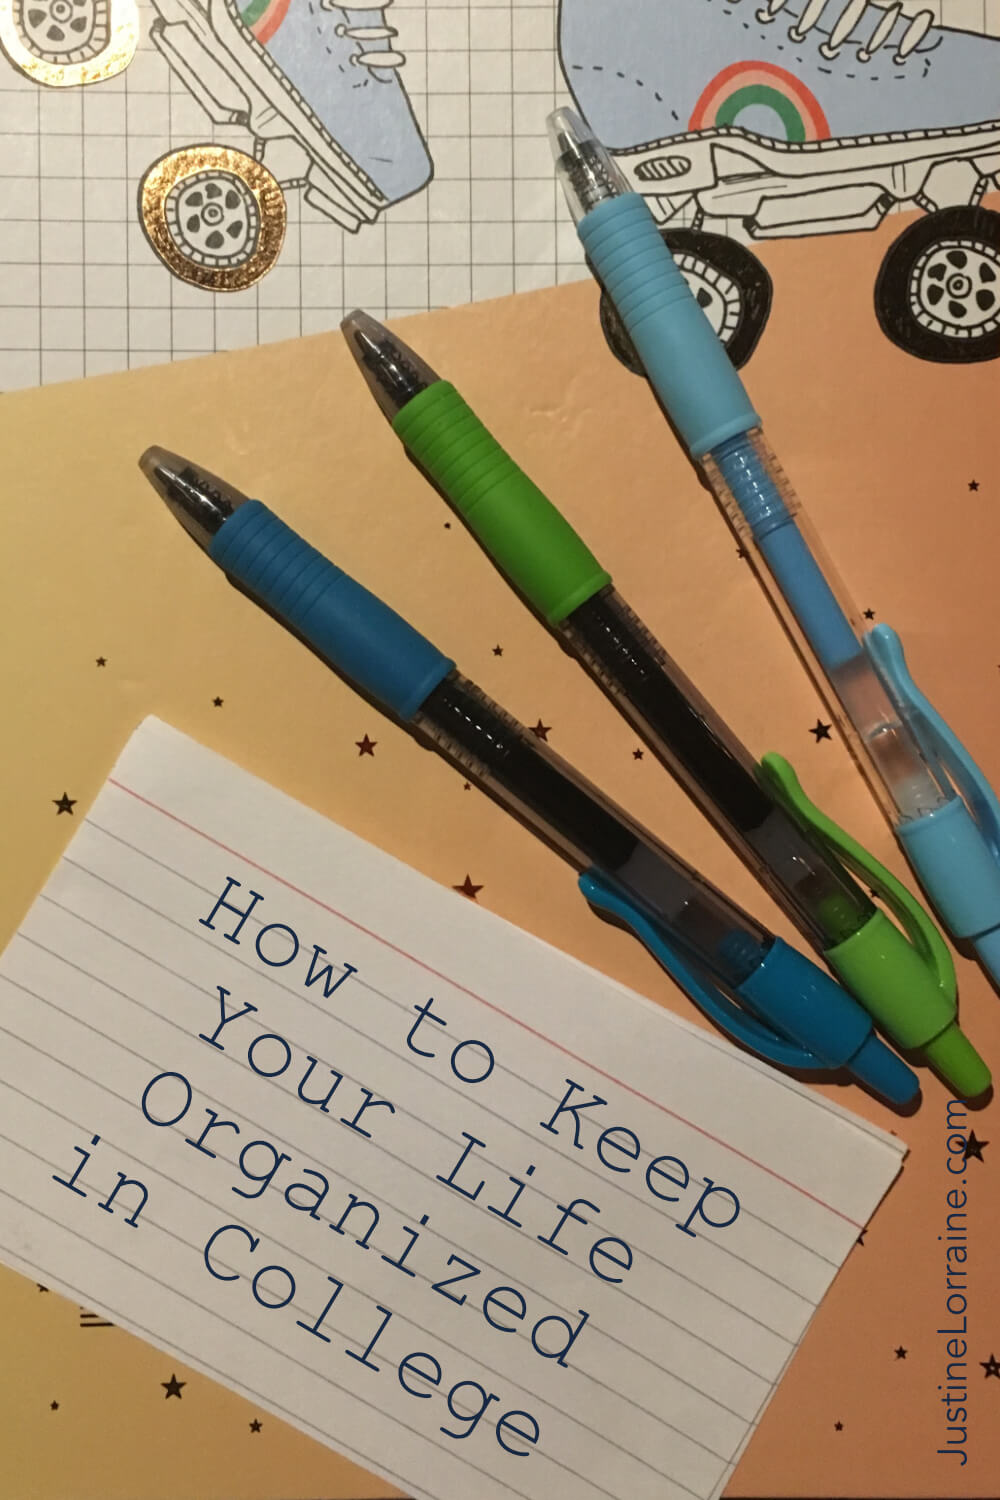 Staying organized in college is hard. Here are a few ways I stay organized.